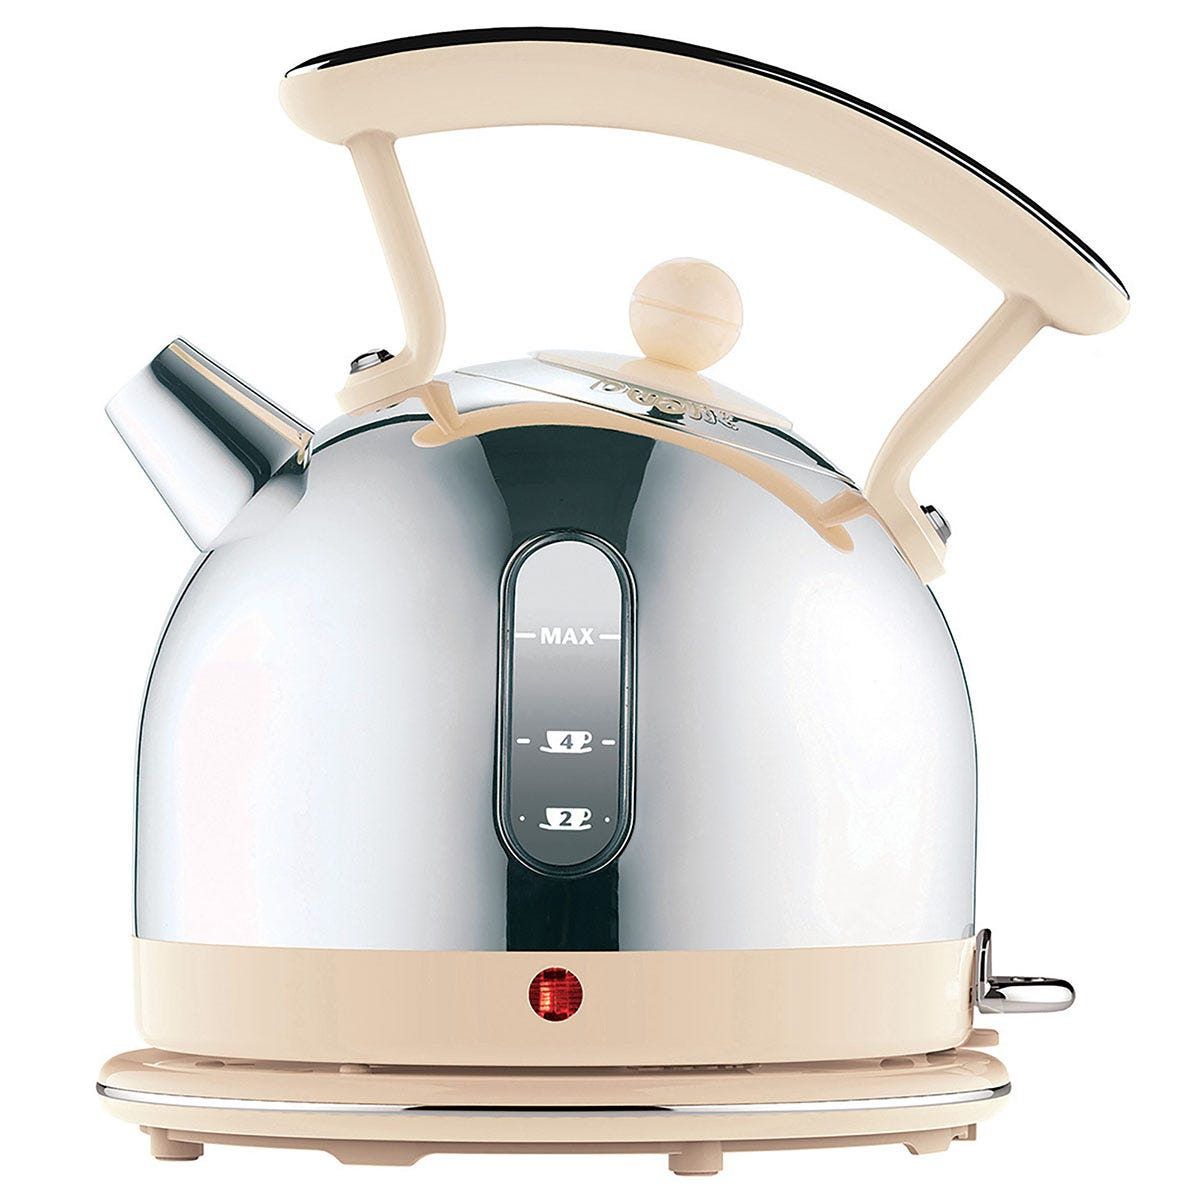 Dualit DA7222 Lite 1.7L Cordless Dome Kettle with Viewing Window - Cream